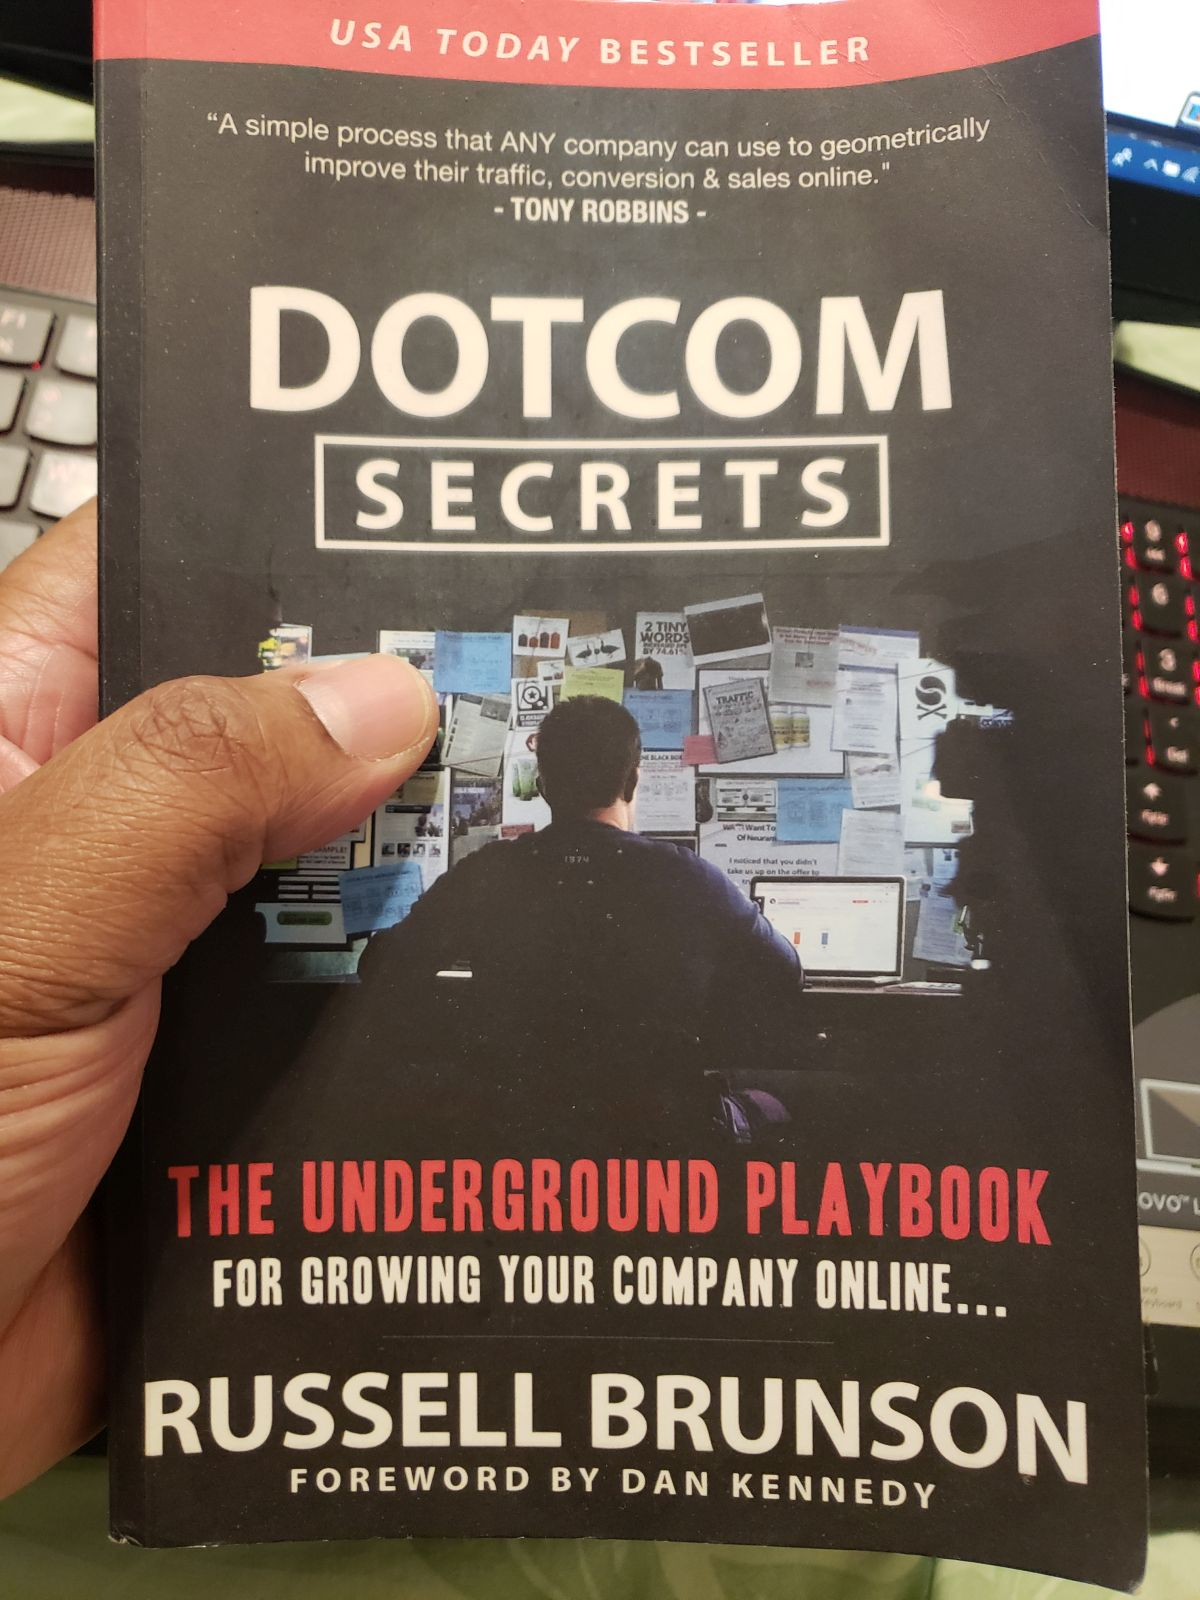 DotCom Secrets by Russell Brunson Book